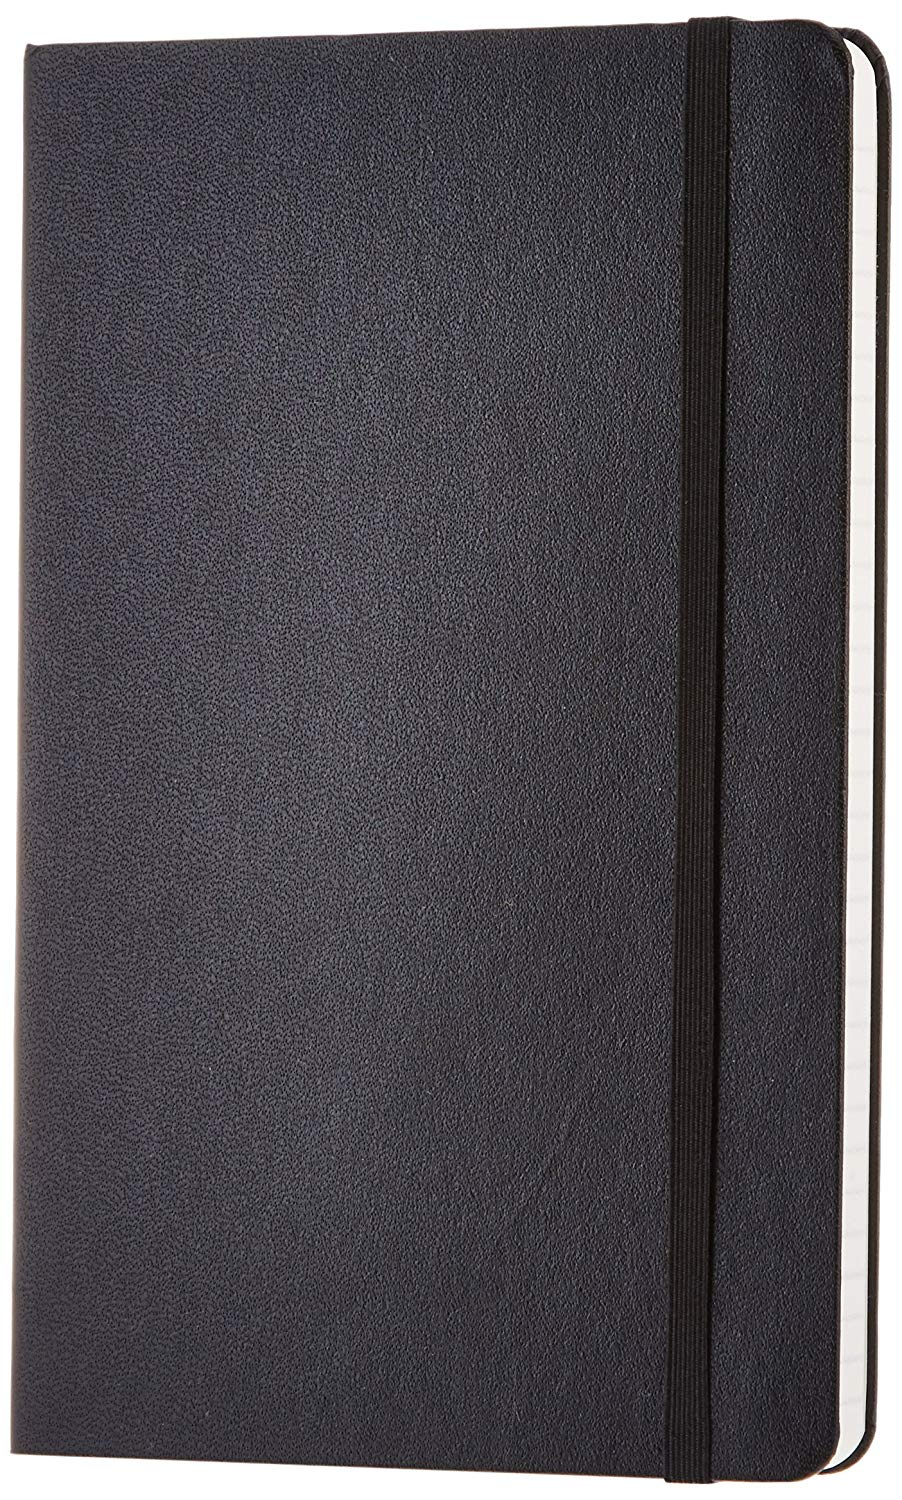 AmazonBasics Classic Ruled Notebook